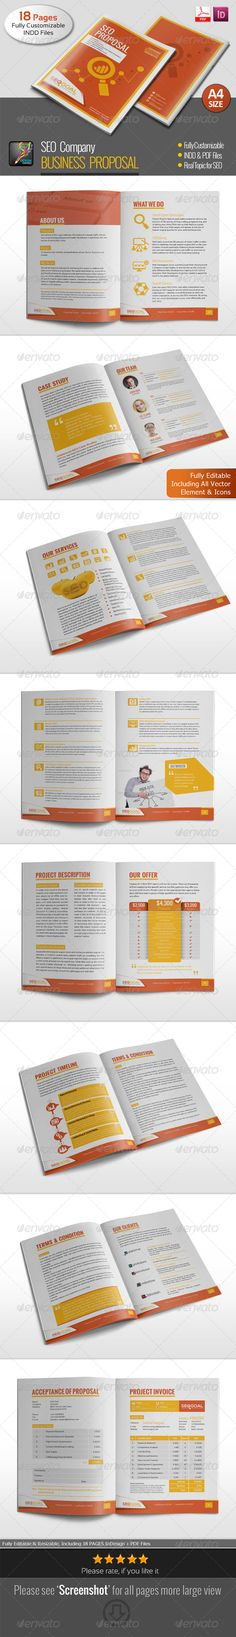 Business Proposal Template w\/ Resume \ Invoice 60+ Pages - proposal template